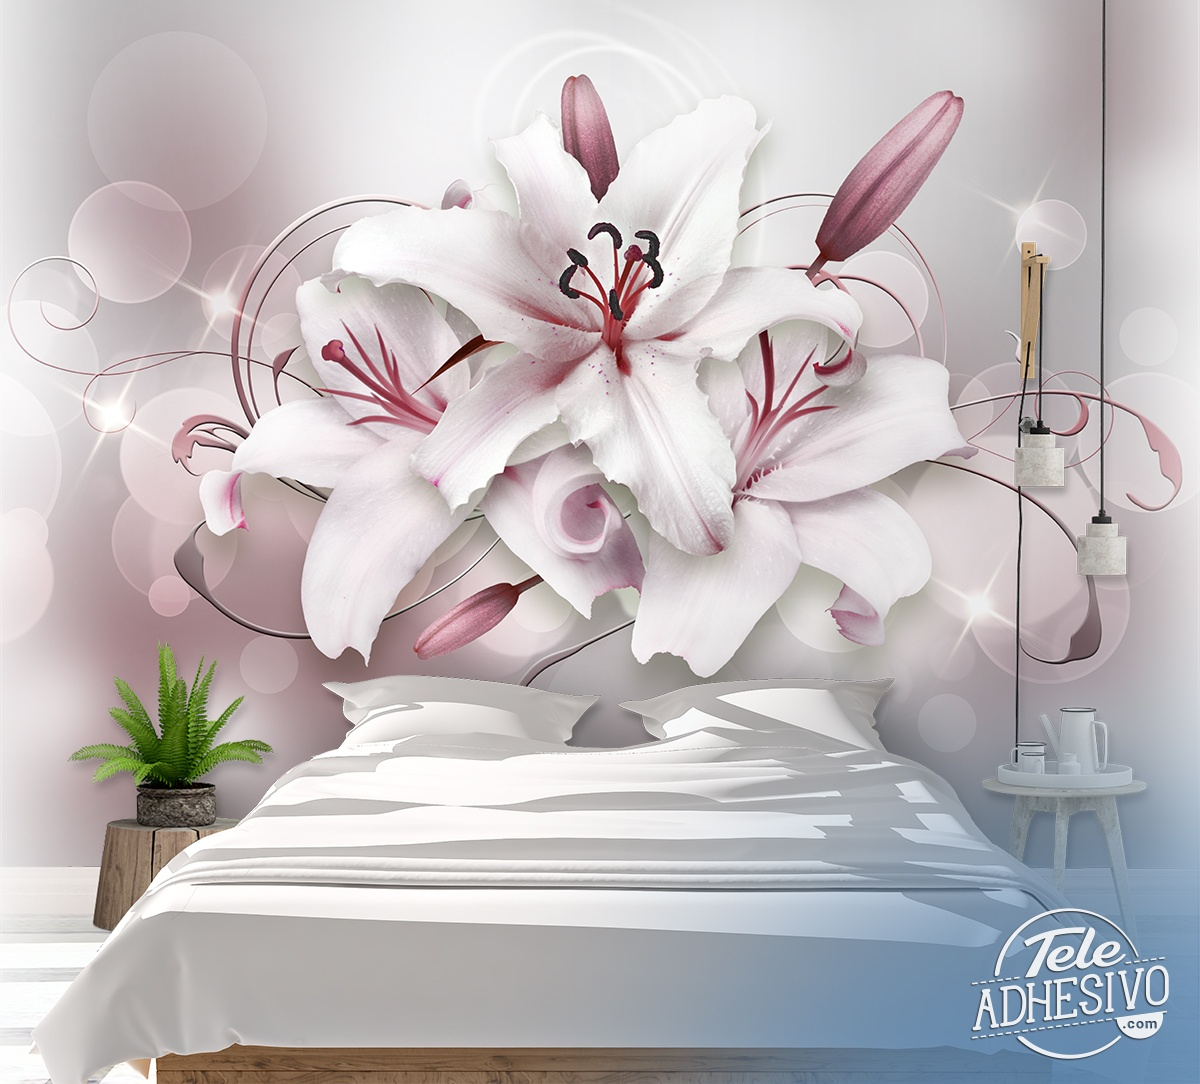 Wall Murals: Bouquet of grey lilies